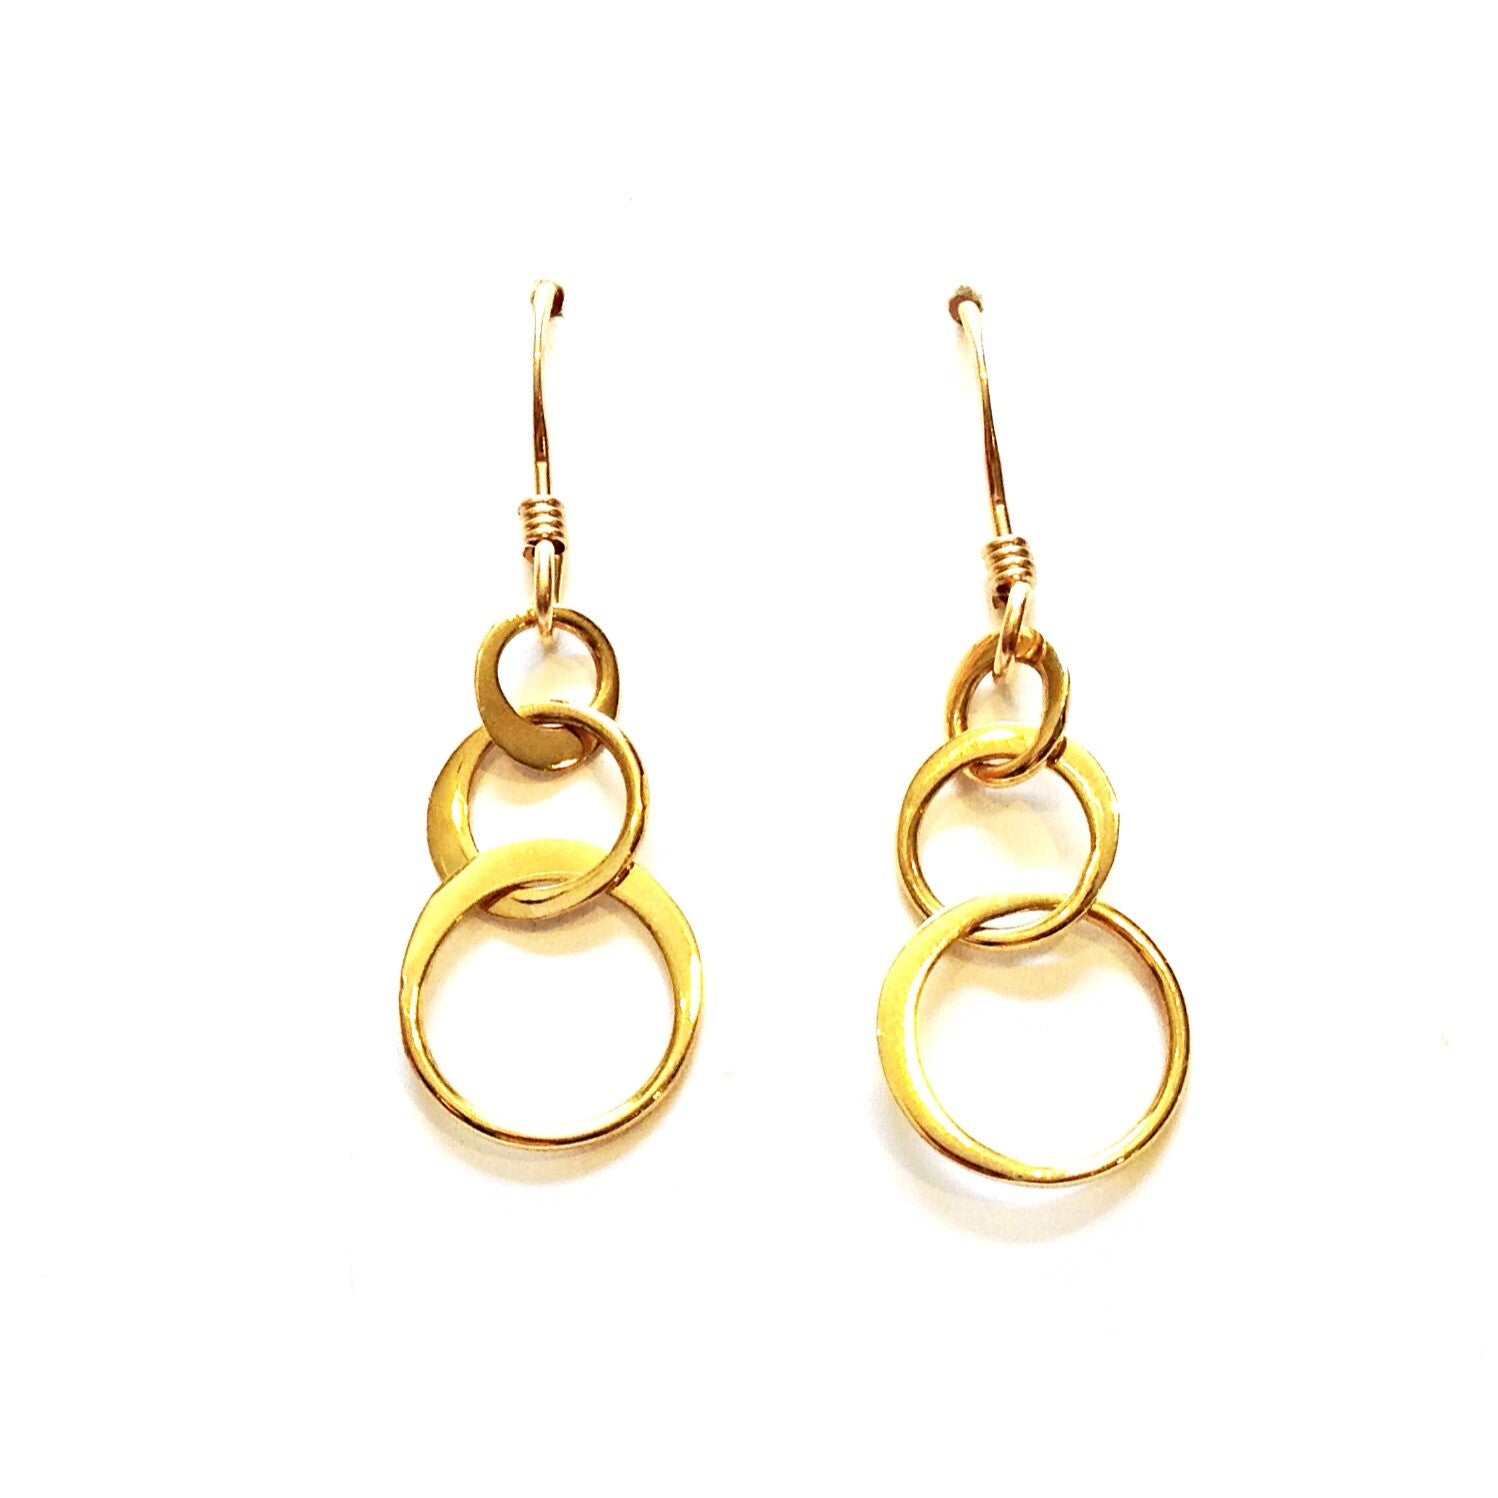 Three Gold Ringlet Dangles, $18 | 14kt Gold Earrings | Light Years Jewelry